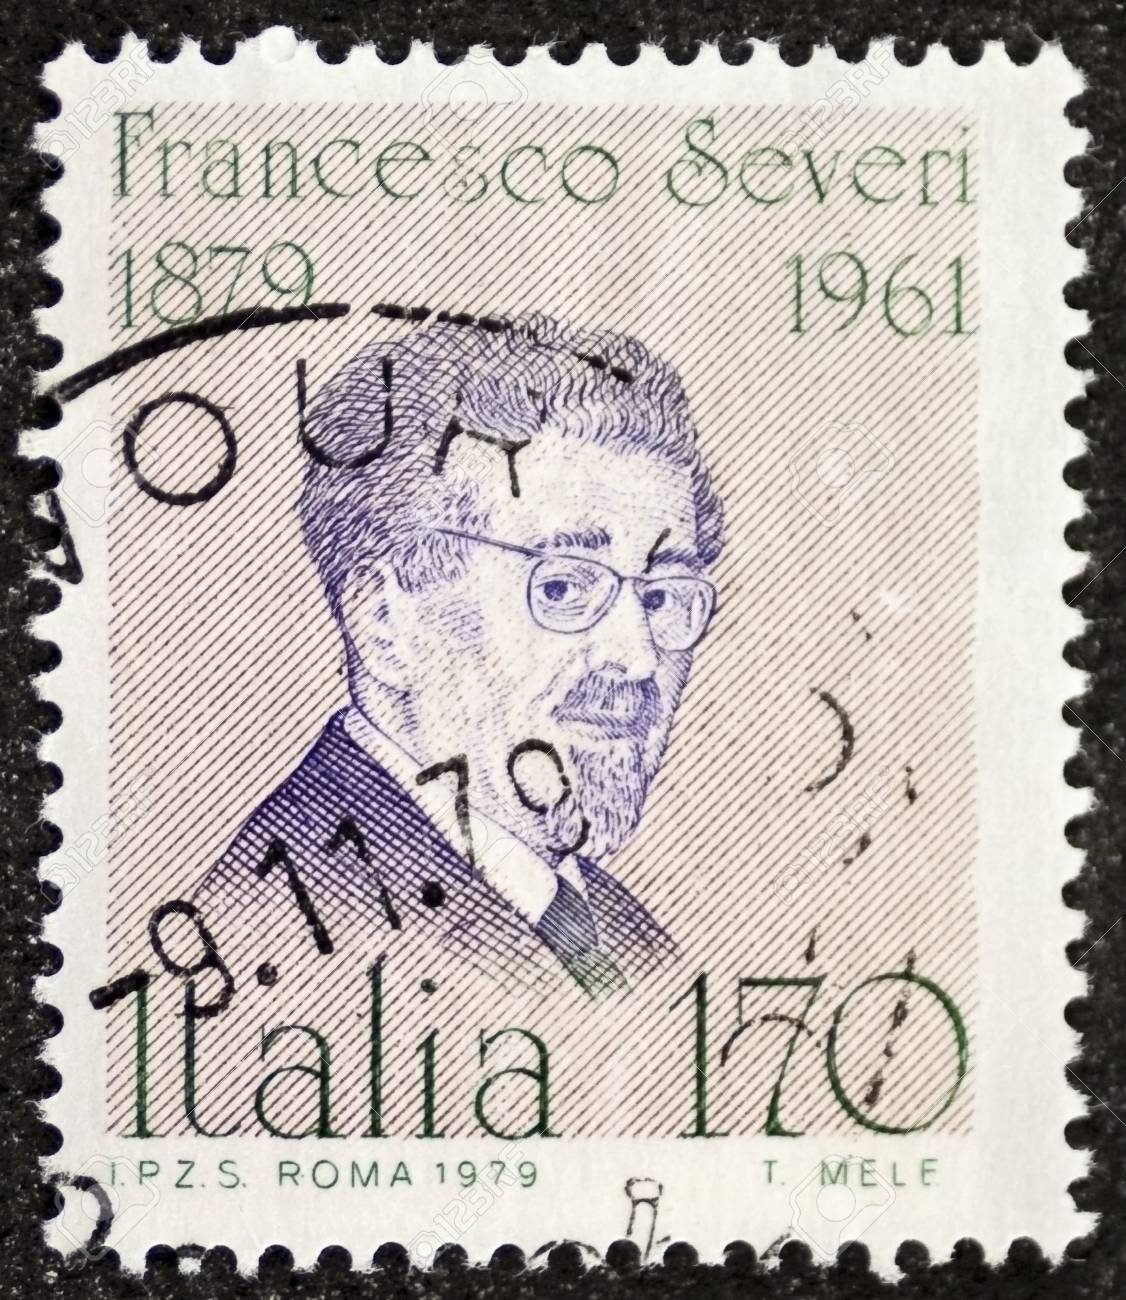 ITALY � CIRCA 1979: a stamp printed in Italy celebrates Francesco Severi (1879 - 1961), famous Italian mathematician, remembered for his contributions in algebraic geometry. Italy, circa 1979 Stock Photo - 21844245